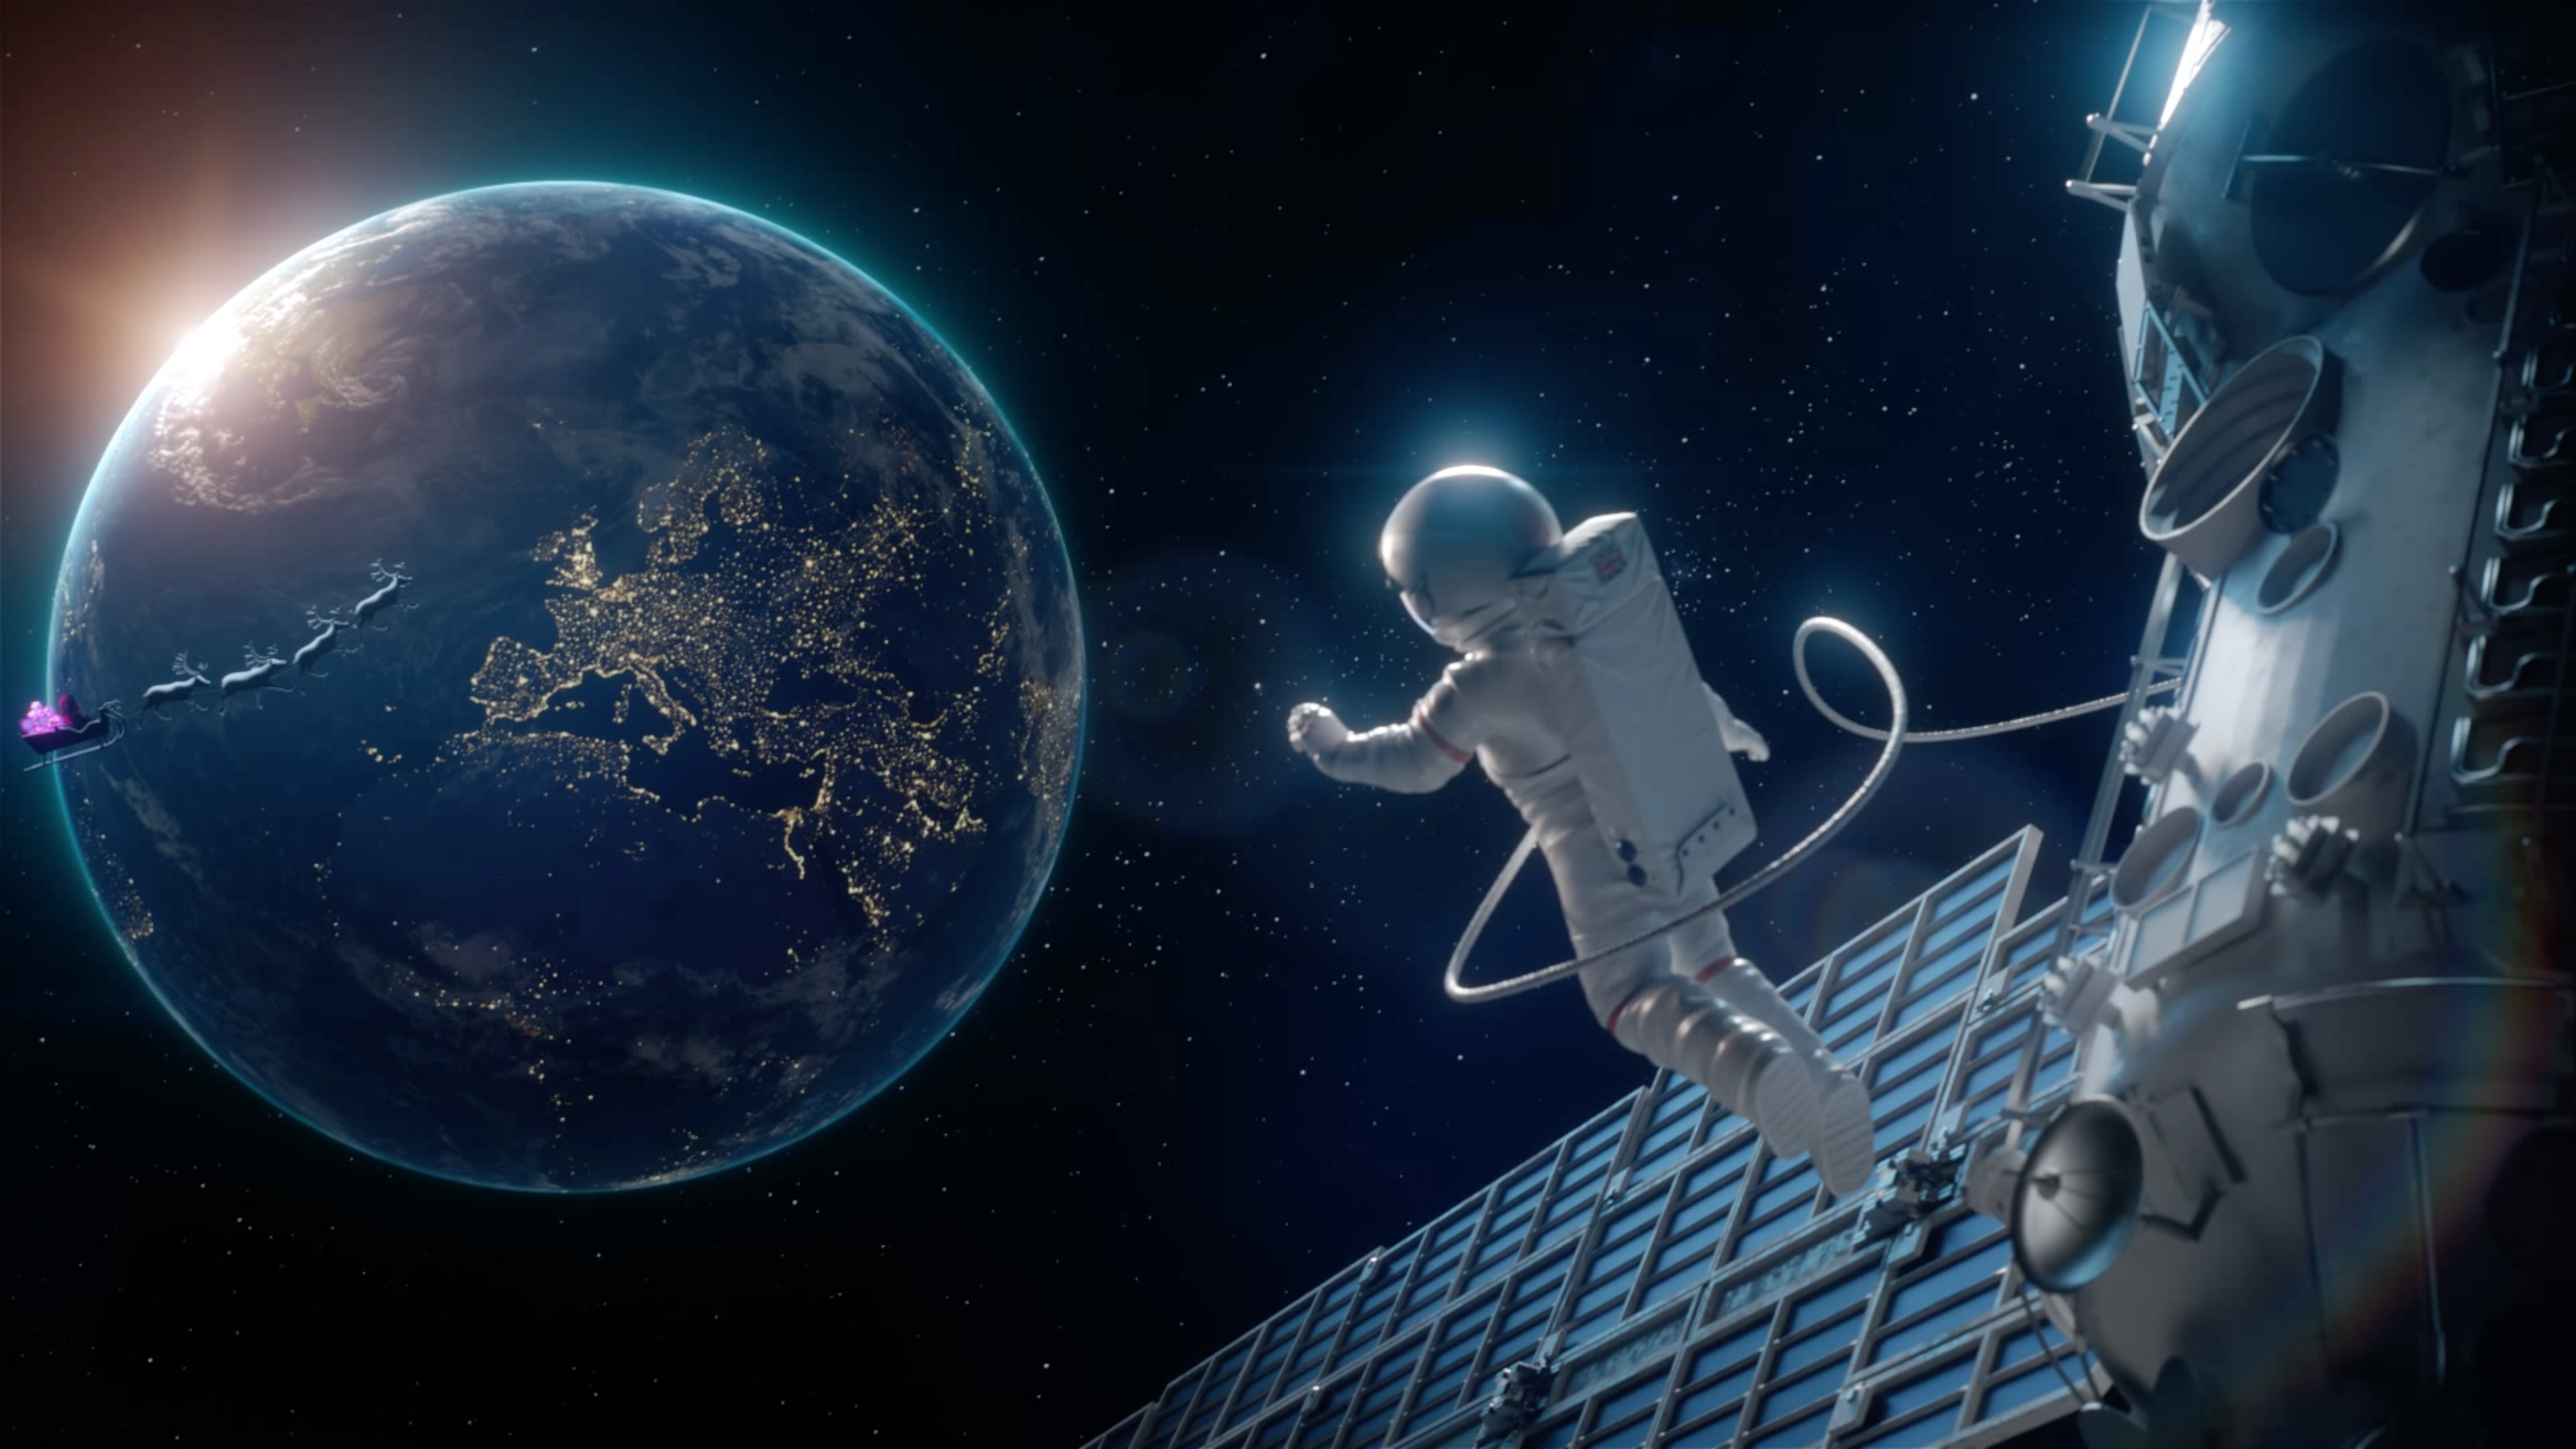 Watch Very co uk's Heartwarming Space-Themed Christmas